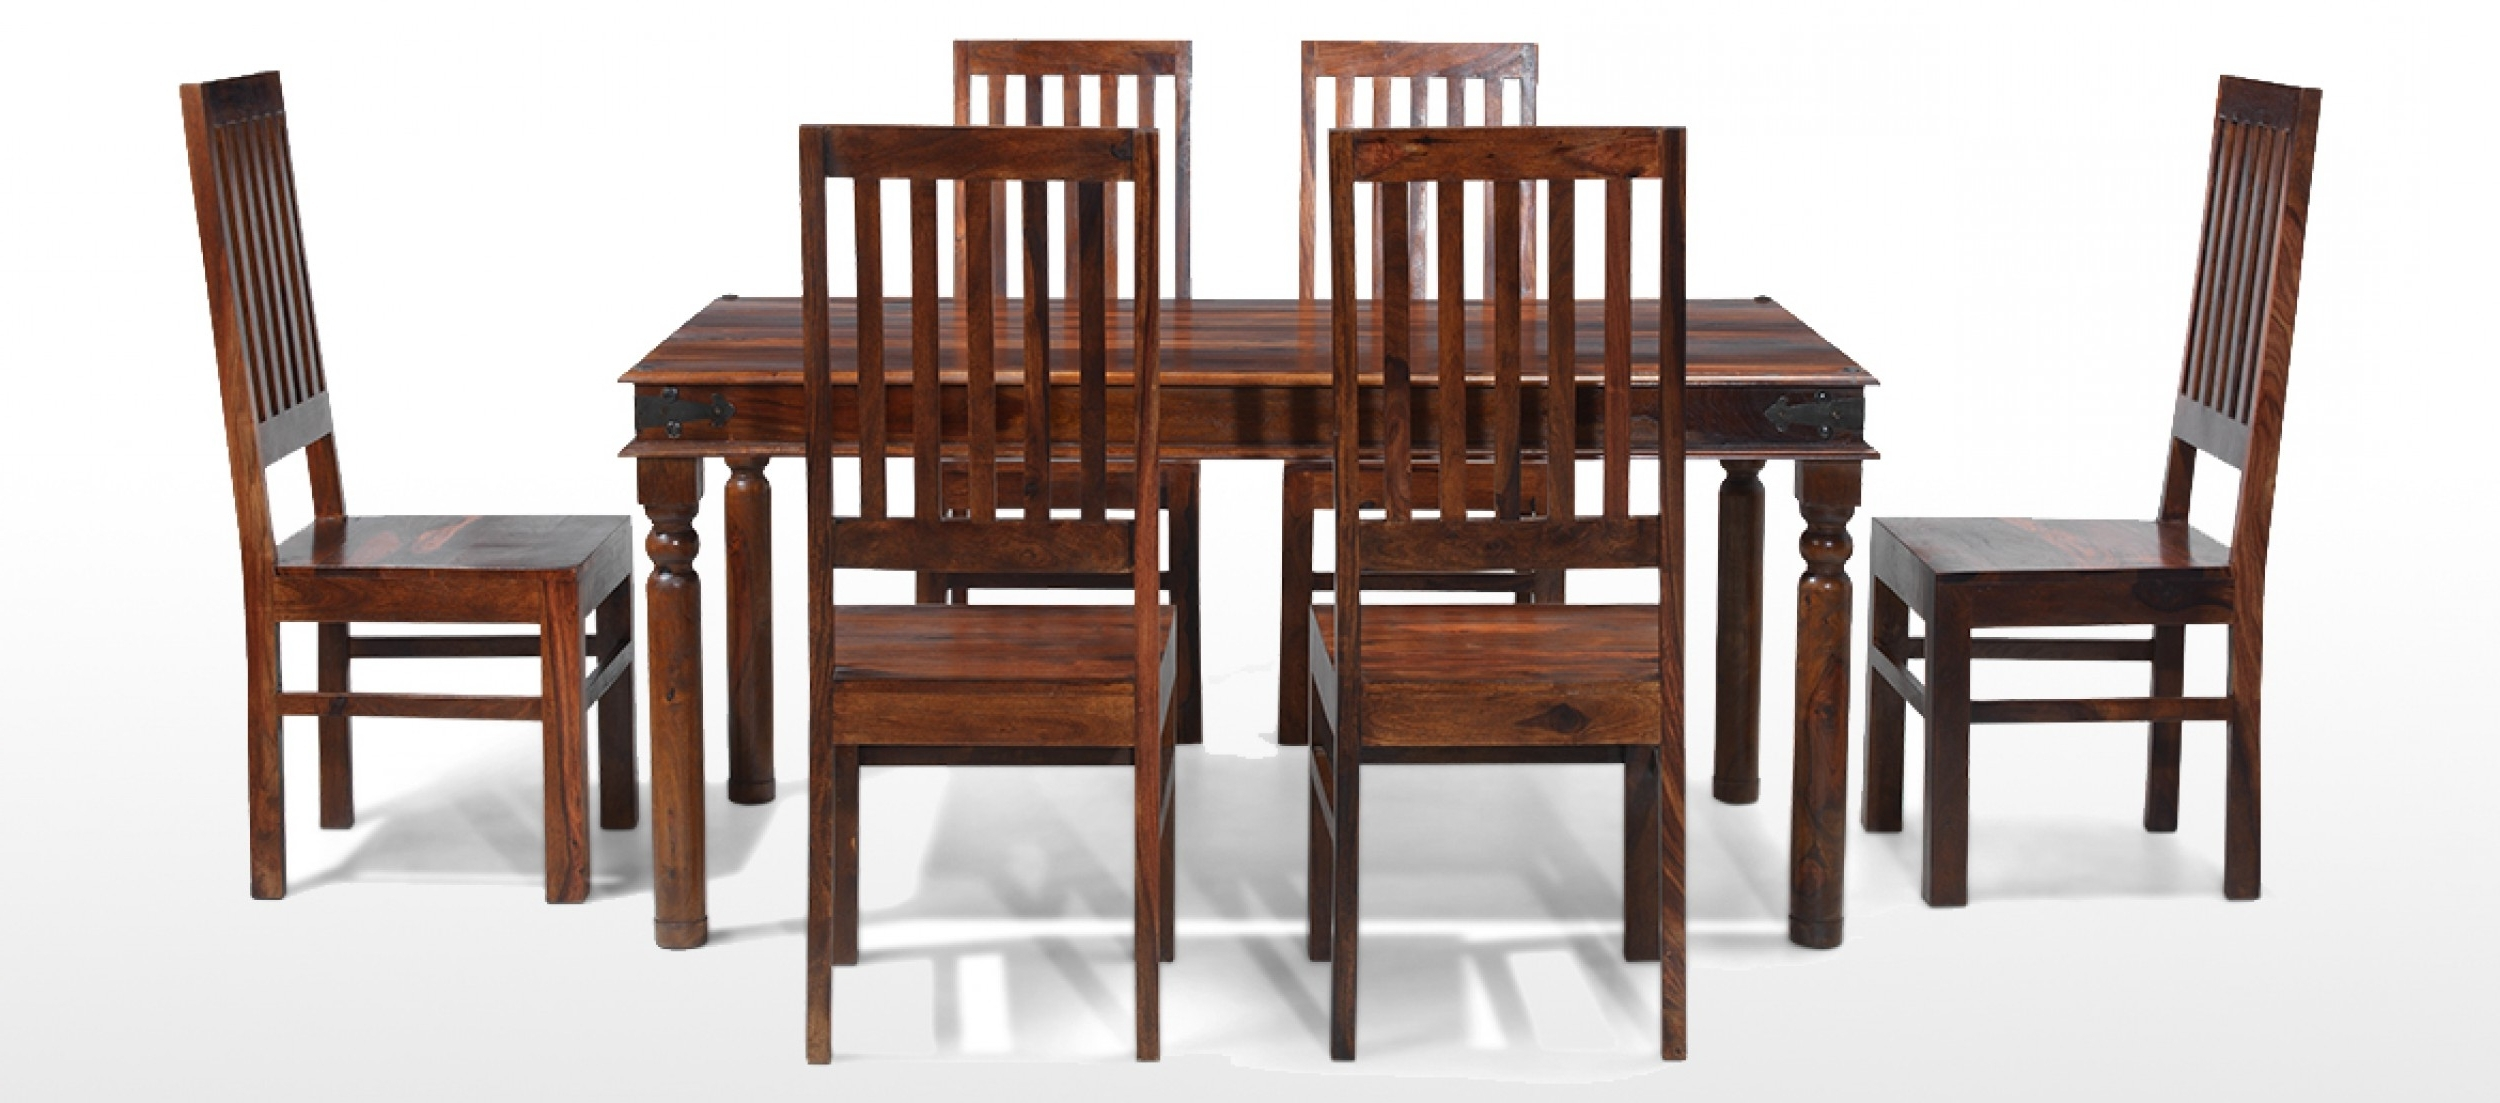 Quercus Living With Dining Tables And 6 Chairs (View 19 of 25)